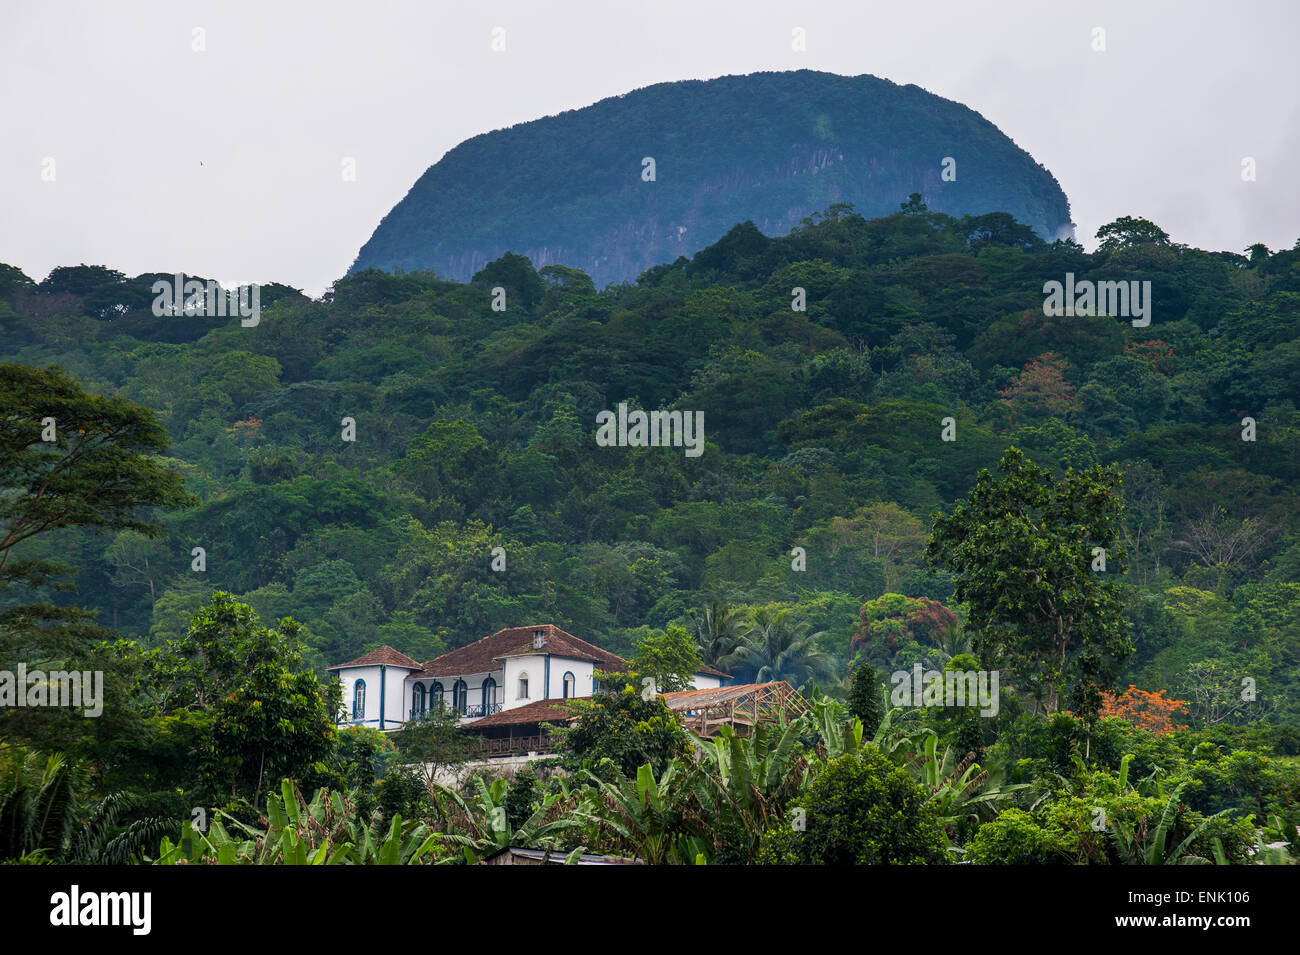 Beautiful Roca de Sao Joao Angolares, east coast of Sao Tome, Sao Tome and Principe, Atlantic Ocean, Africa - Stock Image